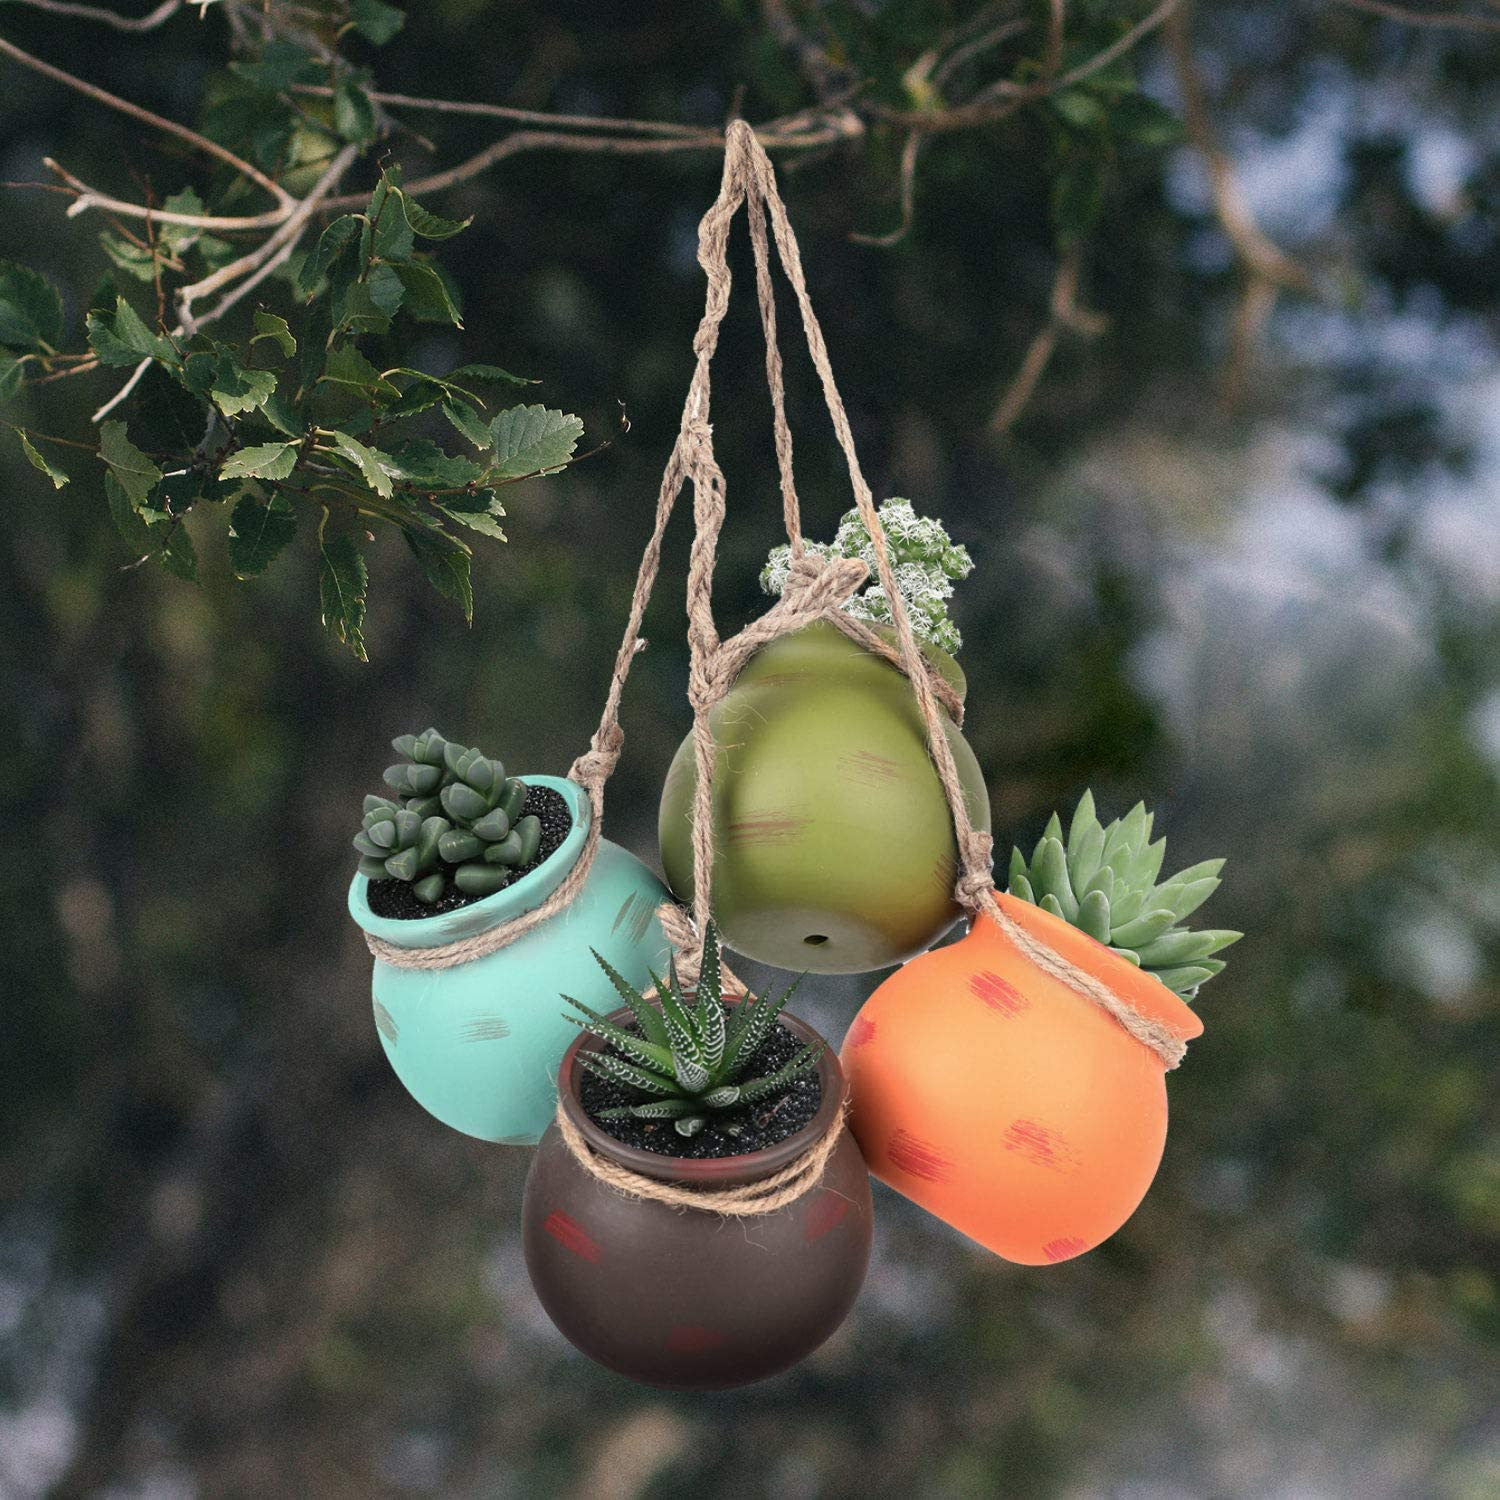 Yesland Ceramic Hanging Mini Flower Planters One Set of 4 Wall or Ceiling Mount Dangling Container in Earth Tone Colored for Indoor Outdoor Decor